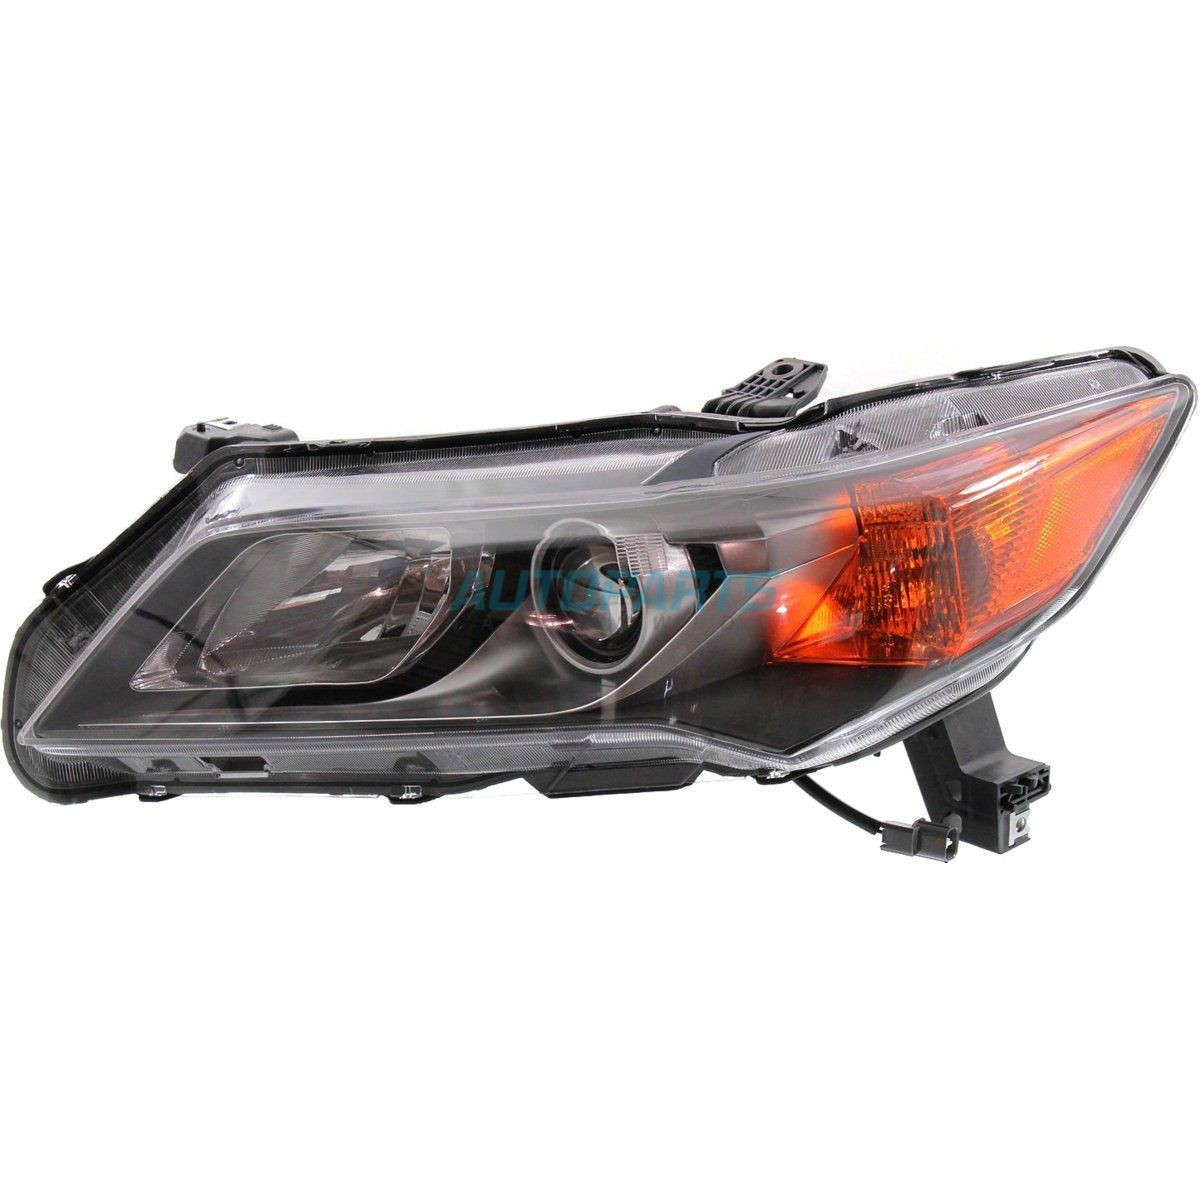 NEW LEFT HALOGEN HEAD LAMP ASSEMBLY FITS 2013-2015 ACURA